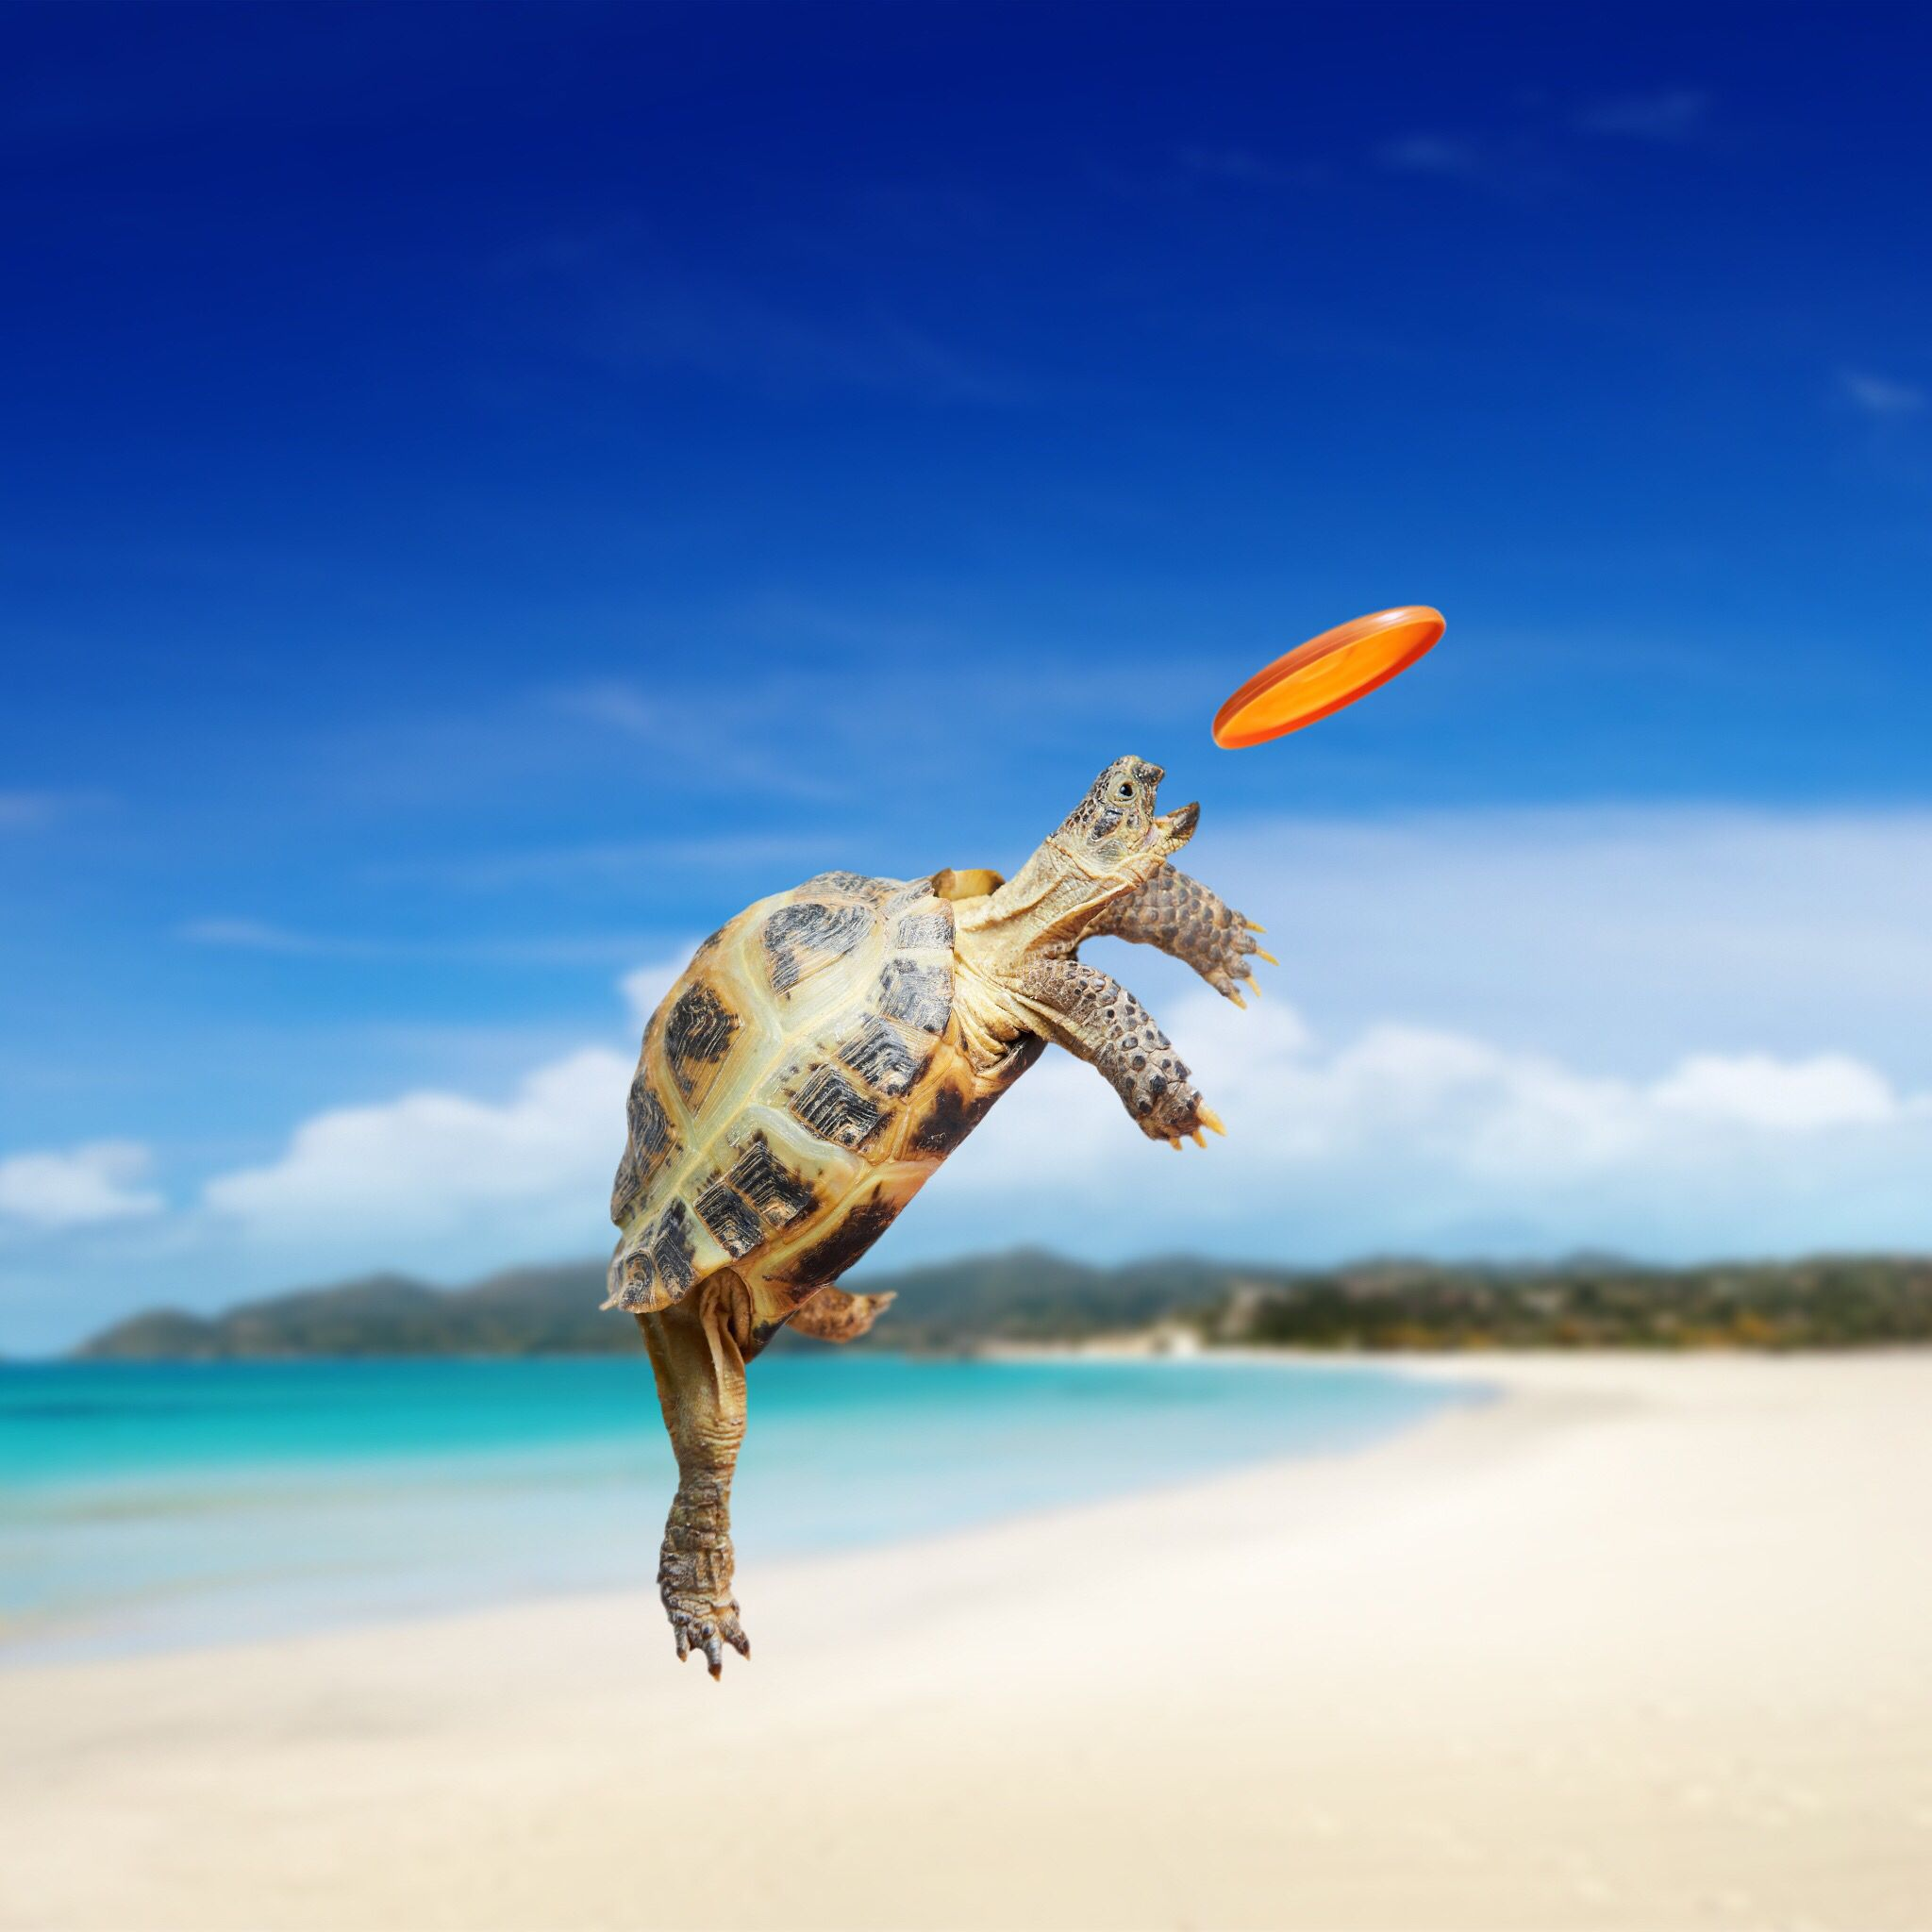 Baby turtle trying to catch a miniature frisbee,can it get